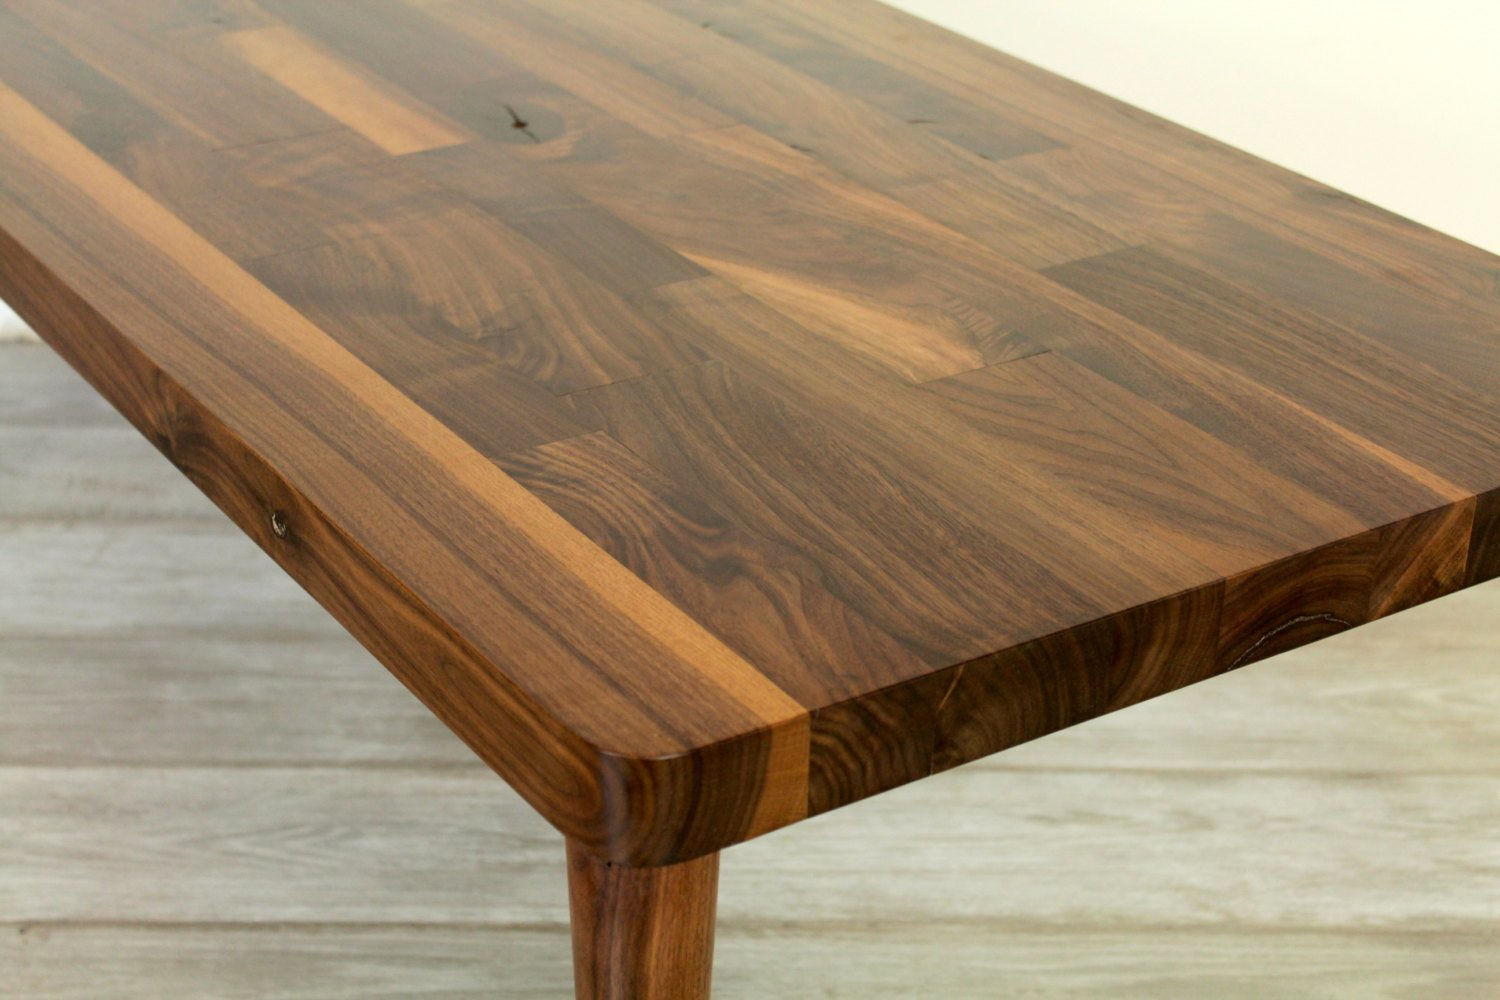 Divisadero Coffee Table - JeremiahCollection - 4